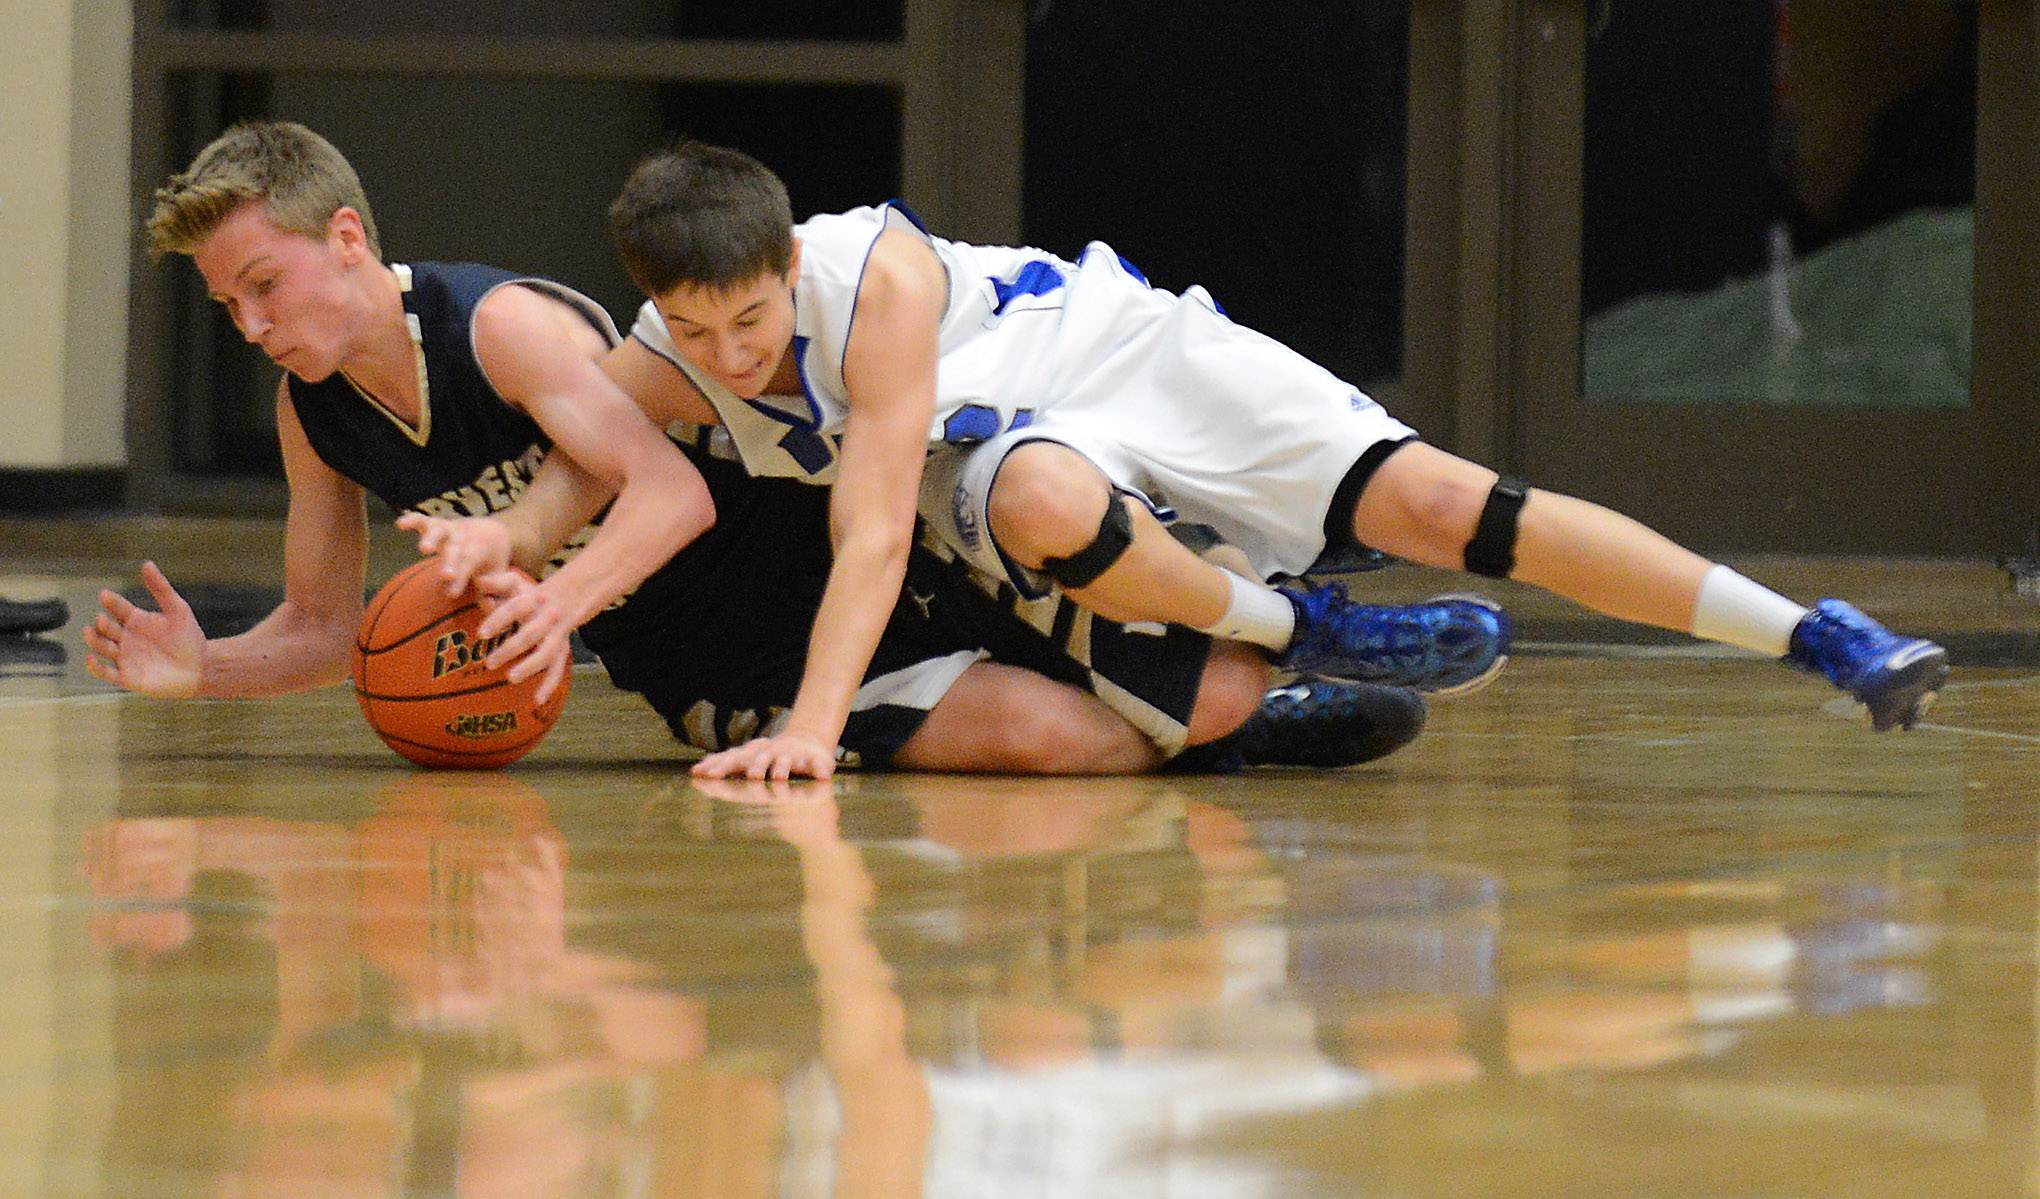 Harvest Christian's Jake Adams (10), left, and Westminster Christian's Dillion Rejman (12) battle for a loose ball during Friday's regional championship game at Harvest Christian Academy in Elgin.